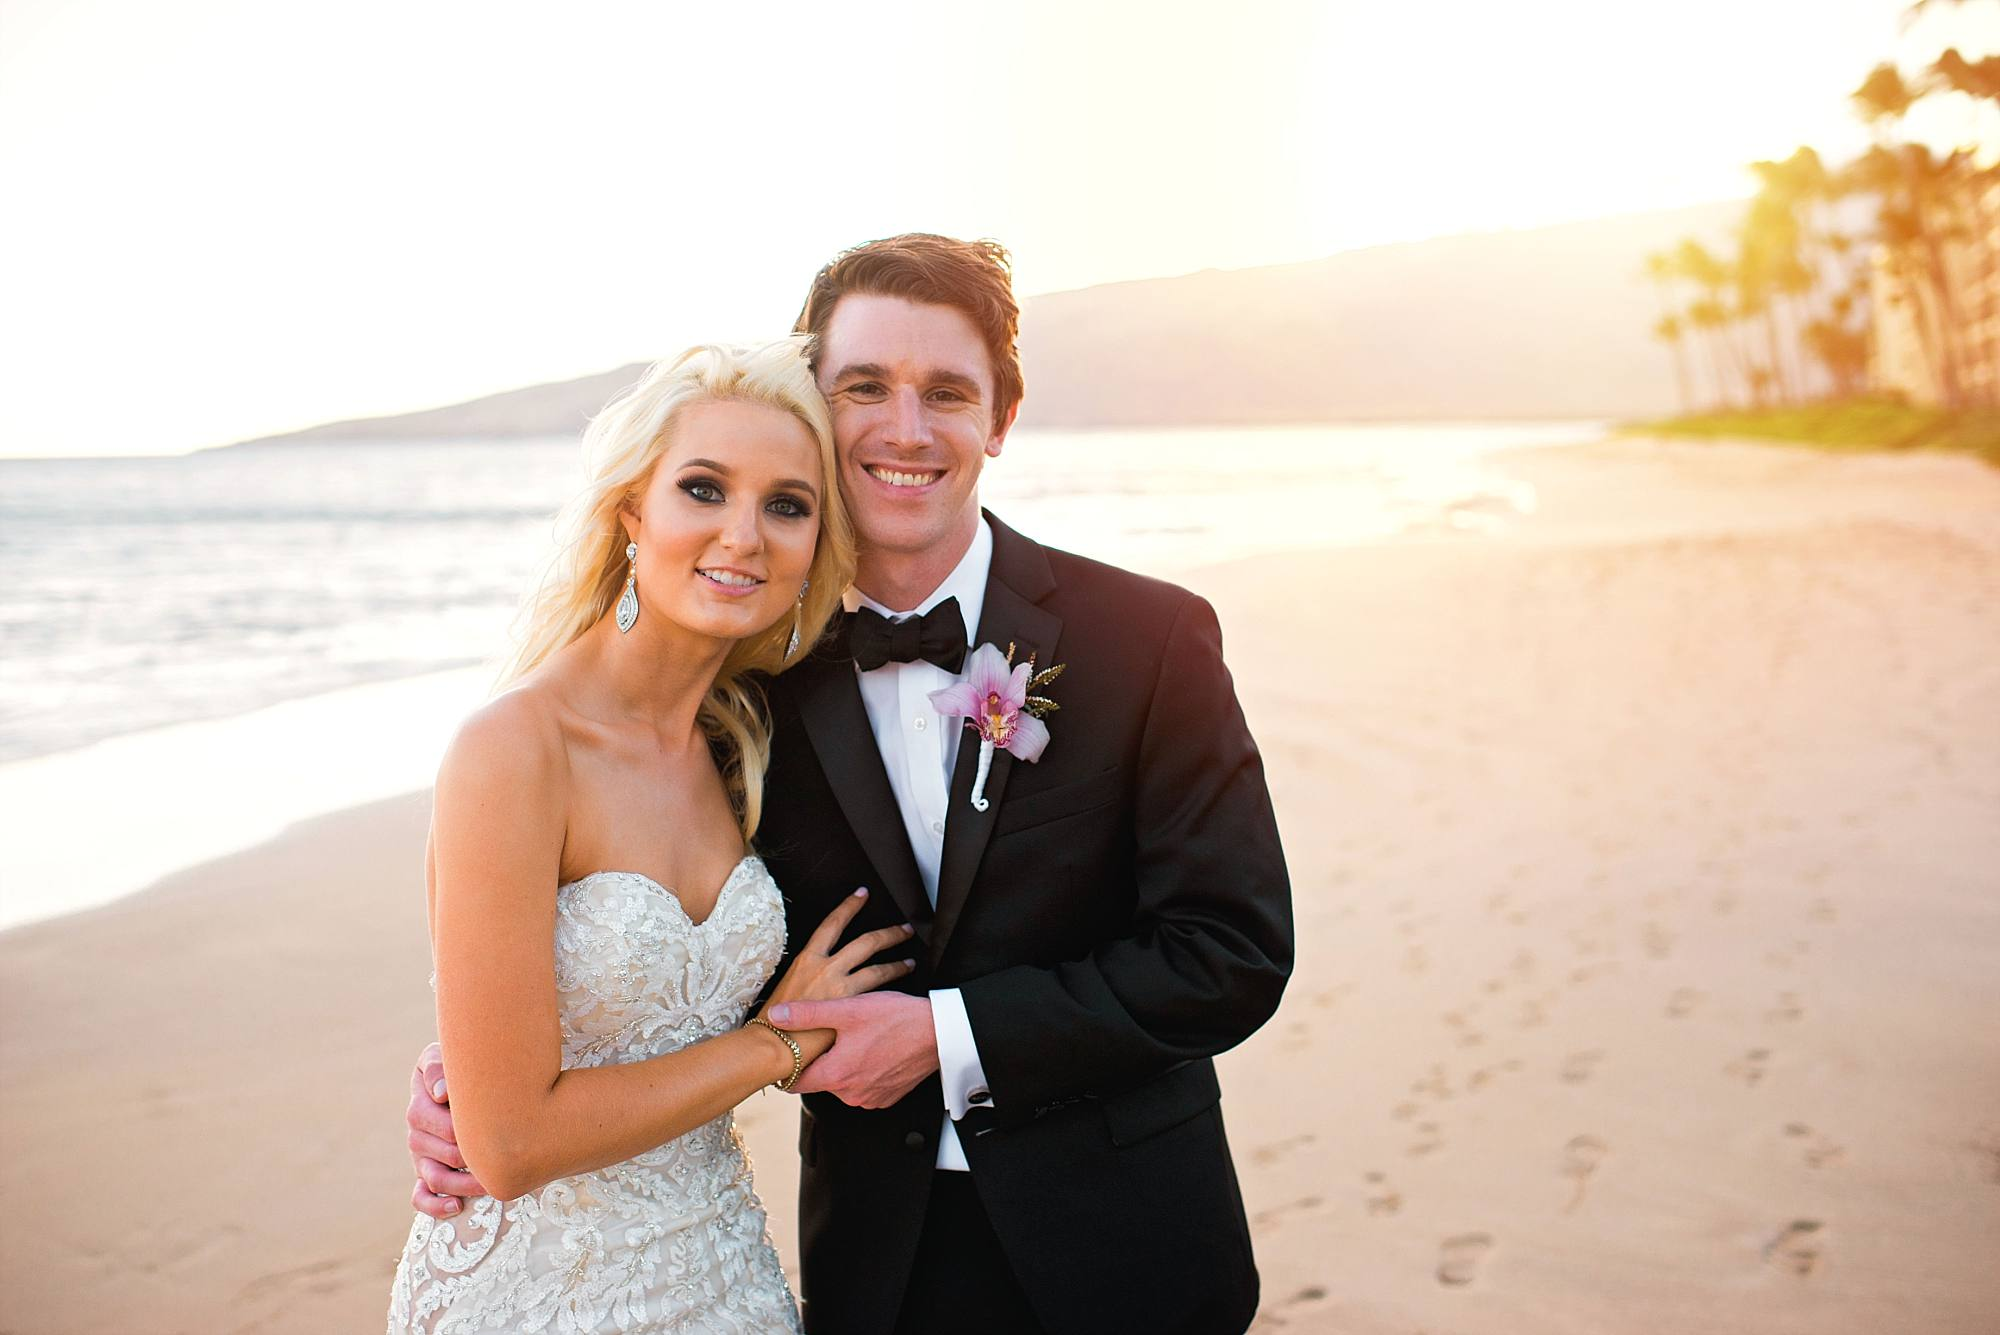 wedding bride and groom photoshoot on beach at beginning of sunset